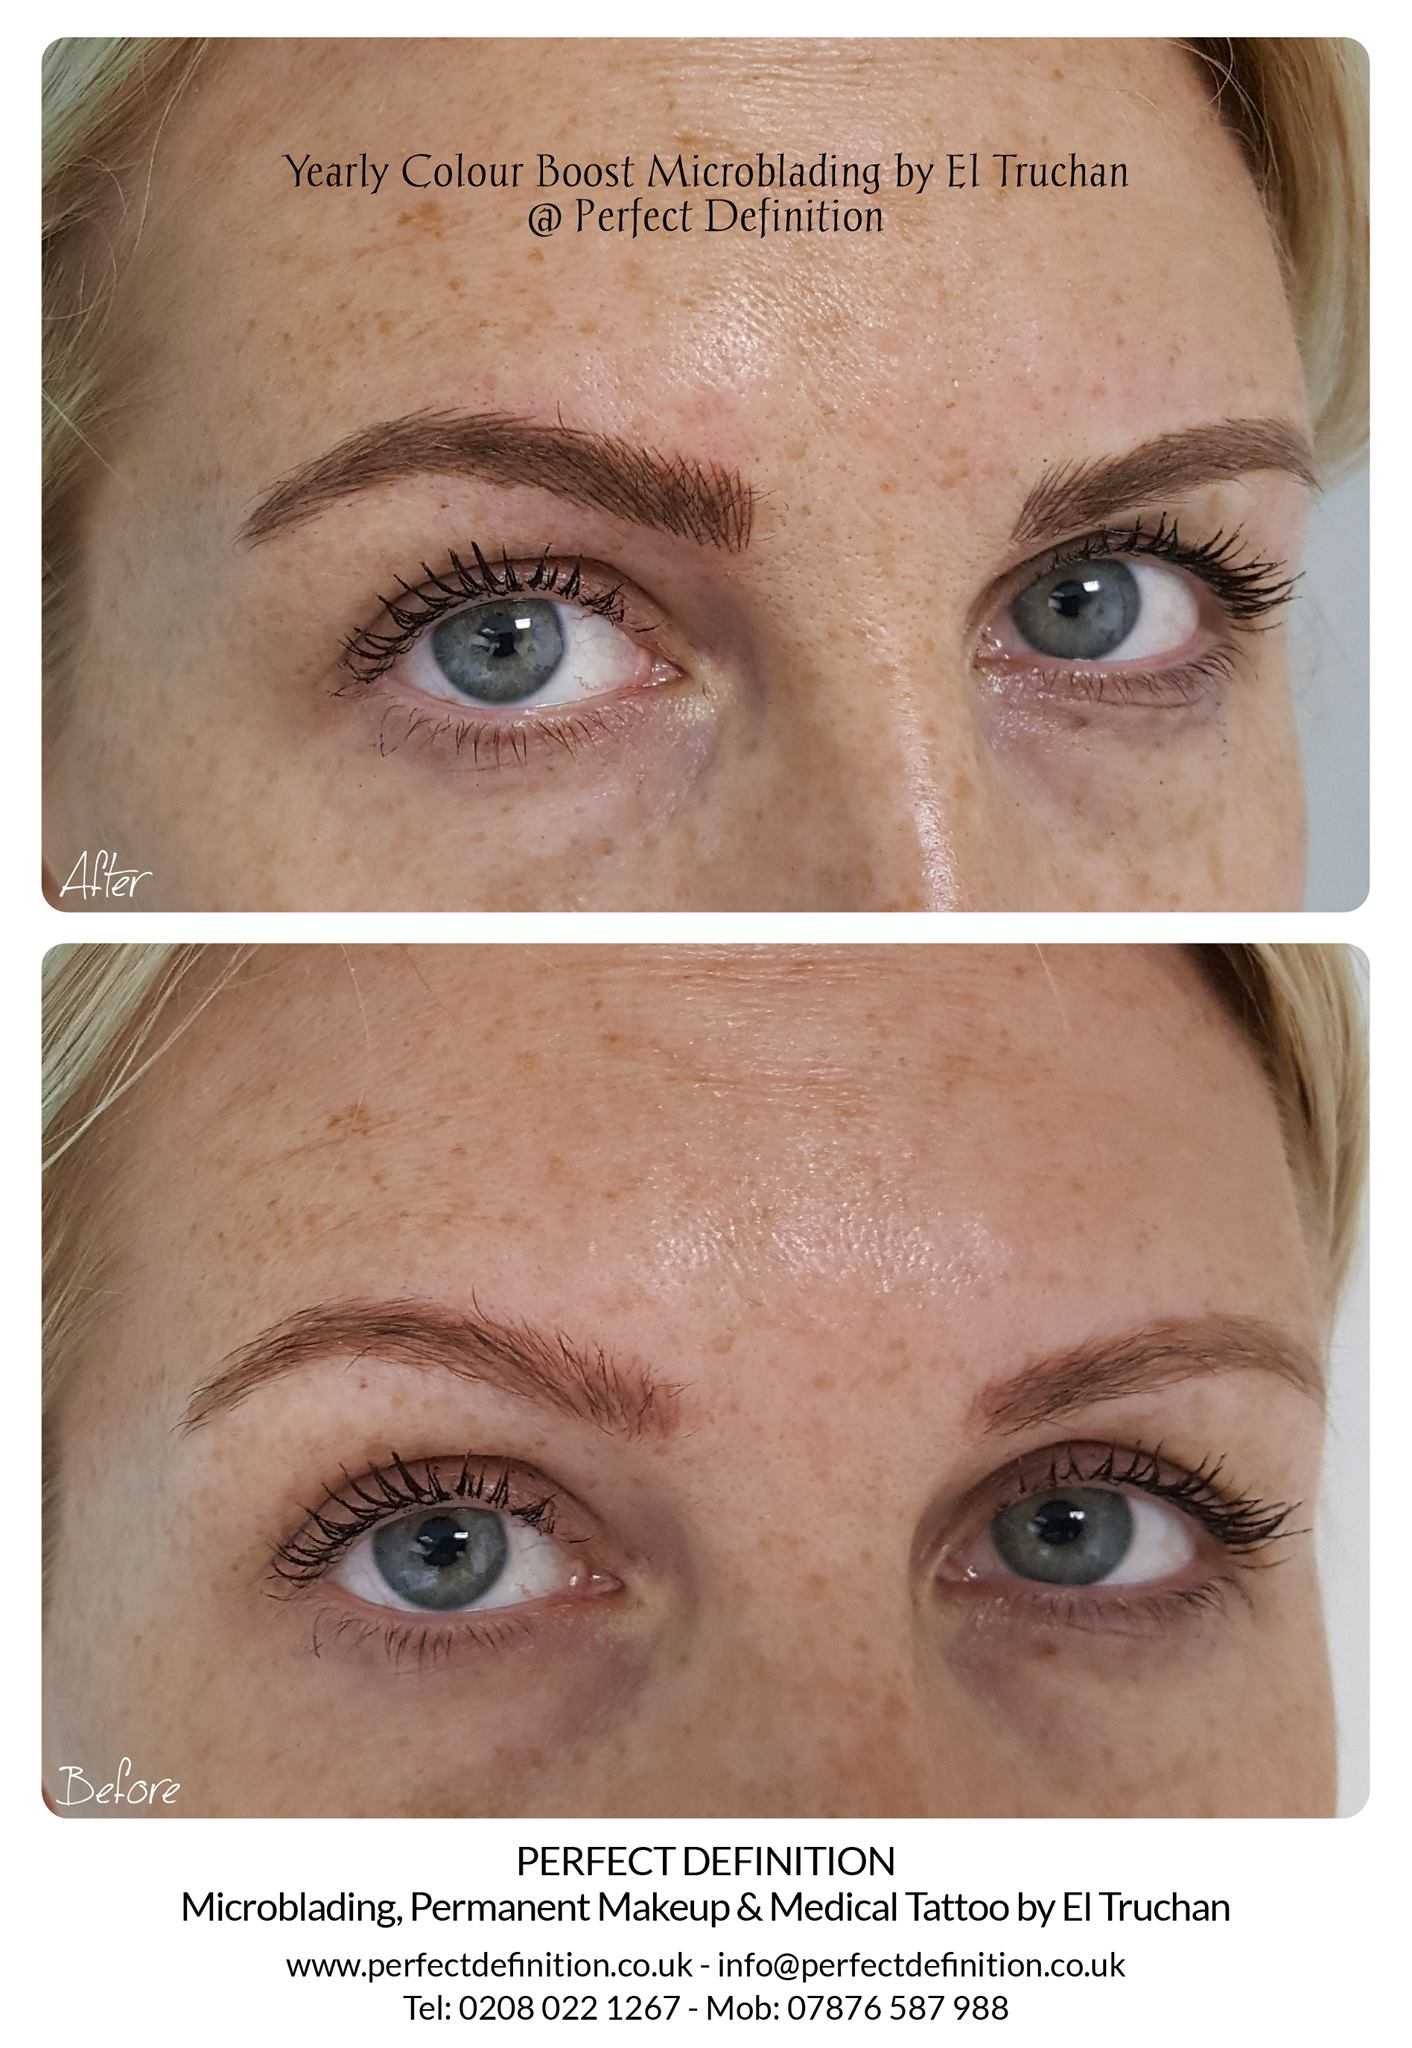 Yearly Colour Boost Microblading by El T